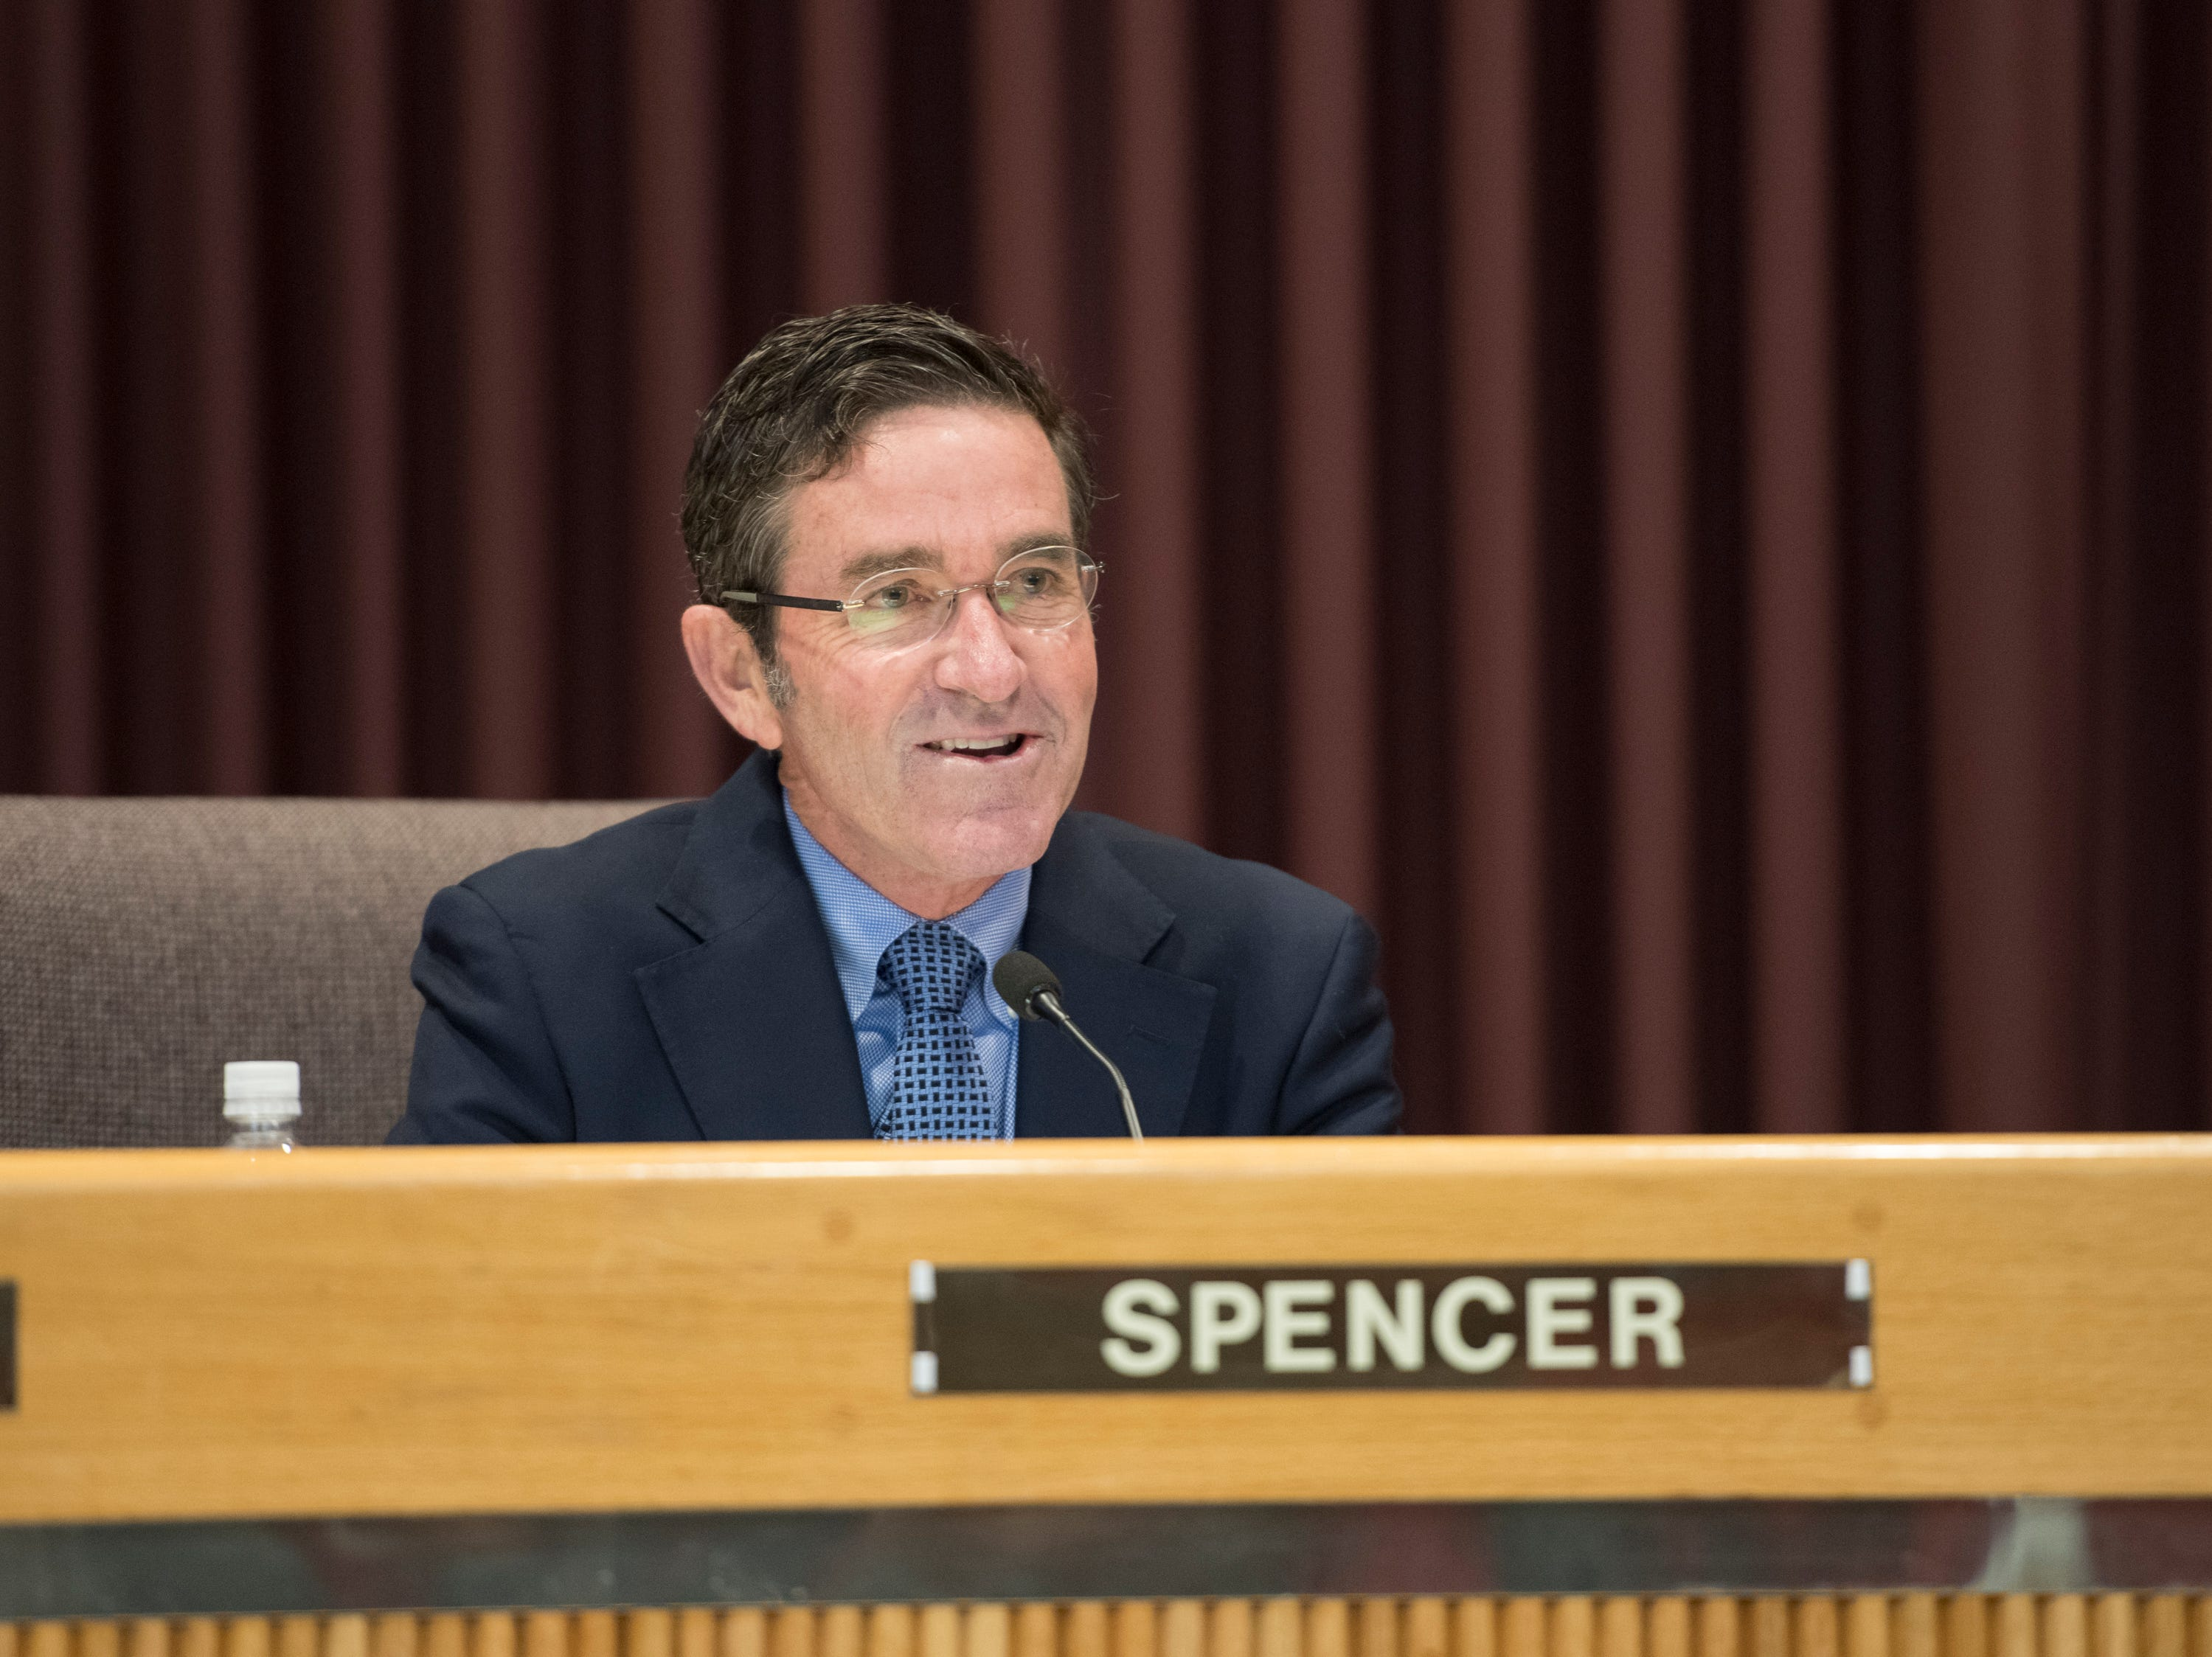 Outgoing council member Brian Spencer speaks prior to the Pensacola City Council and Mayor installation ceremony at City Hall in Pensacola on Tuesday, November 27, 2018.